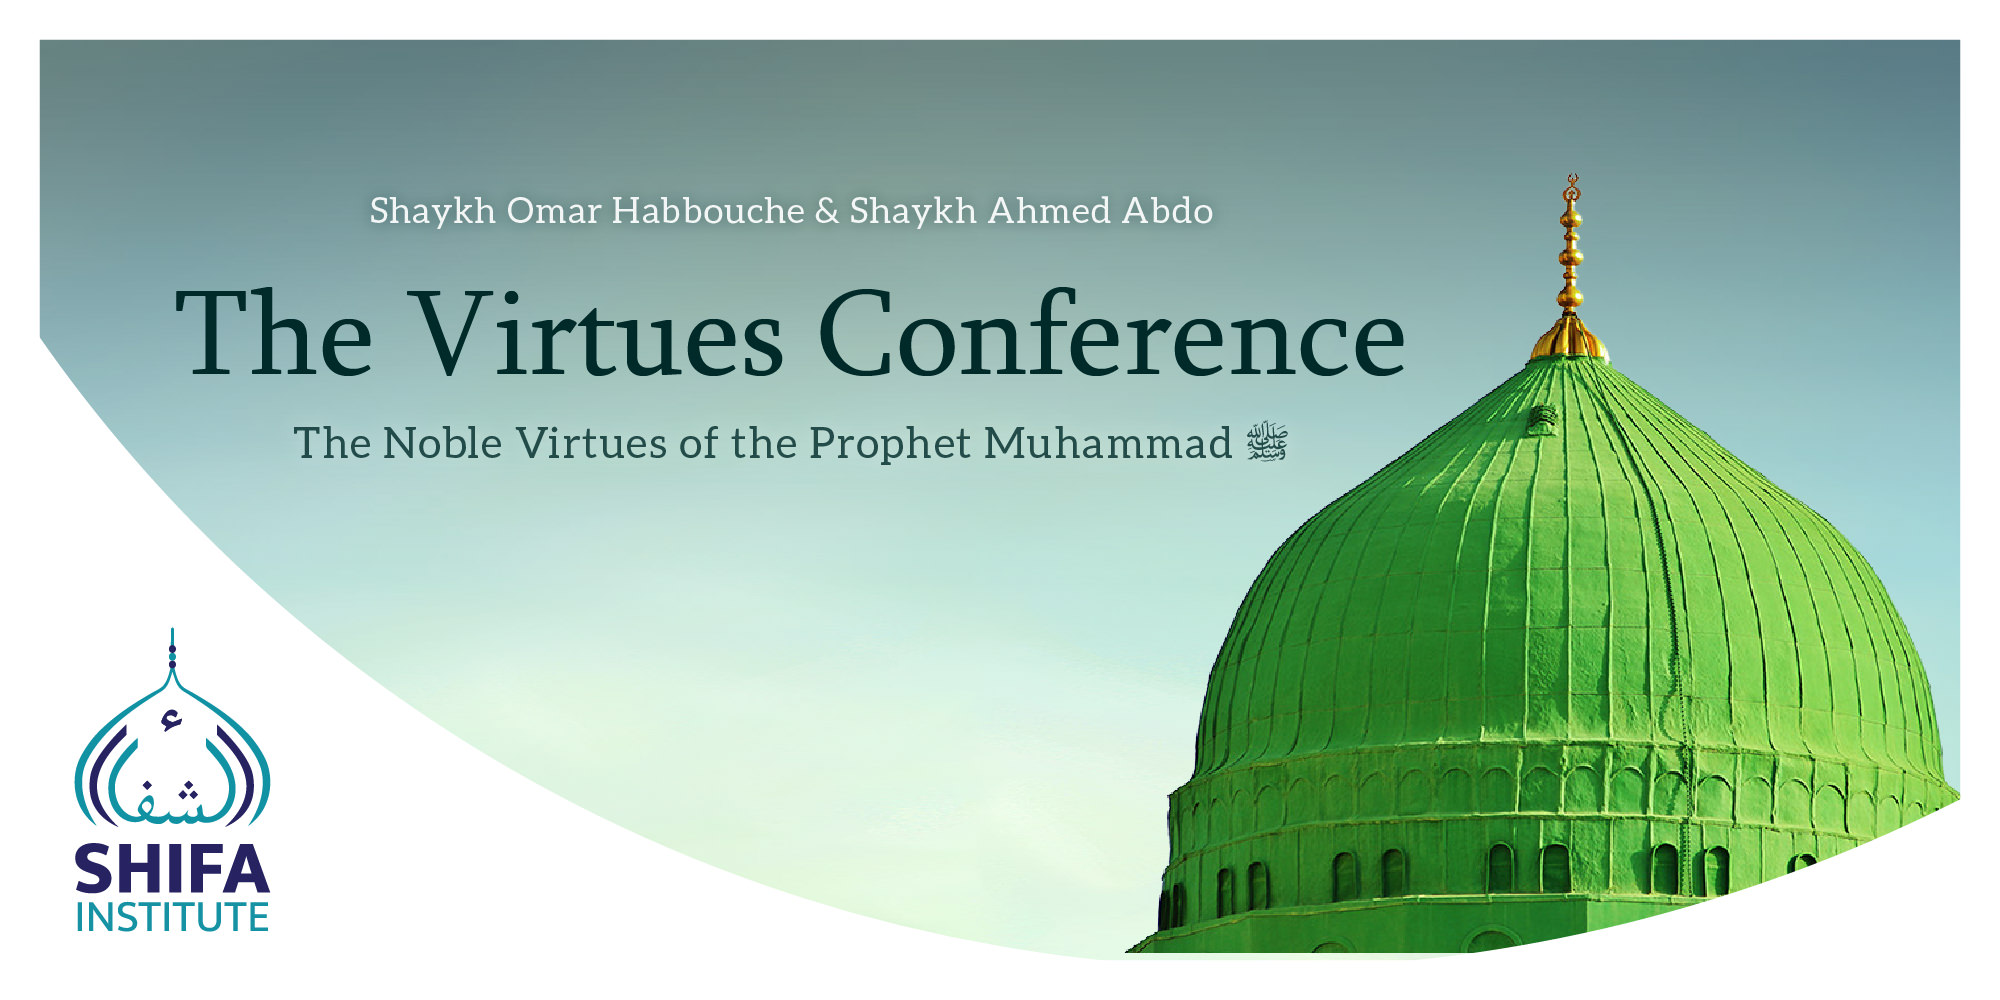 The Virtues Conference